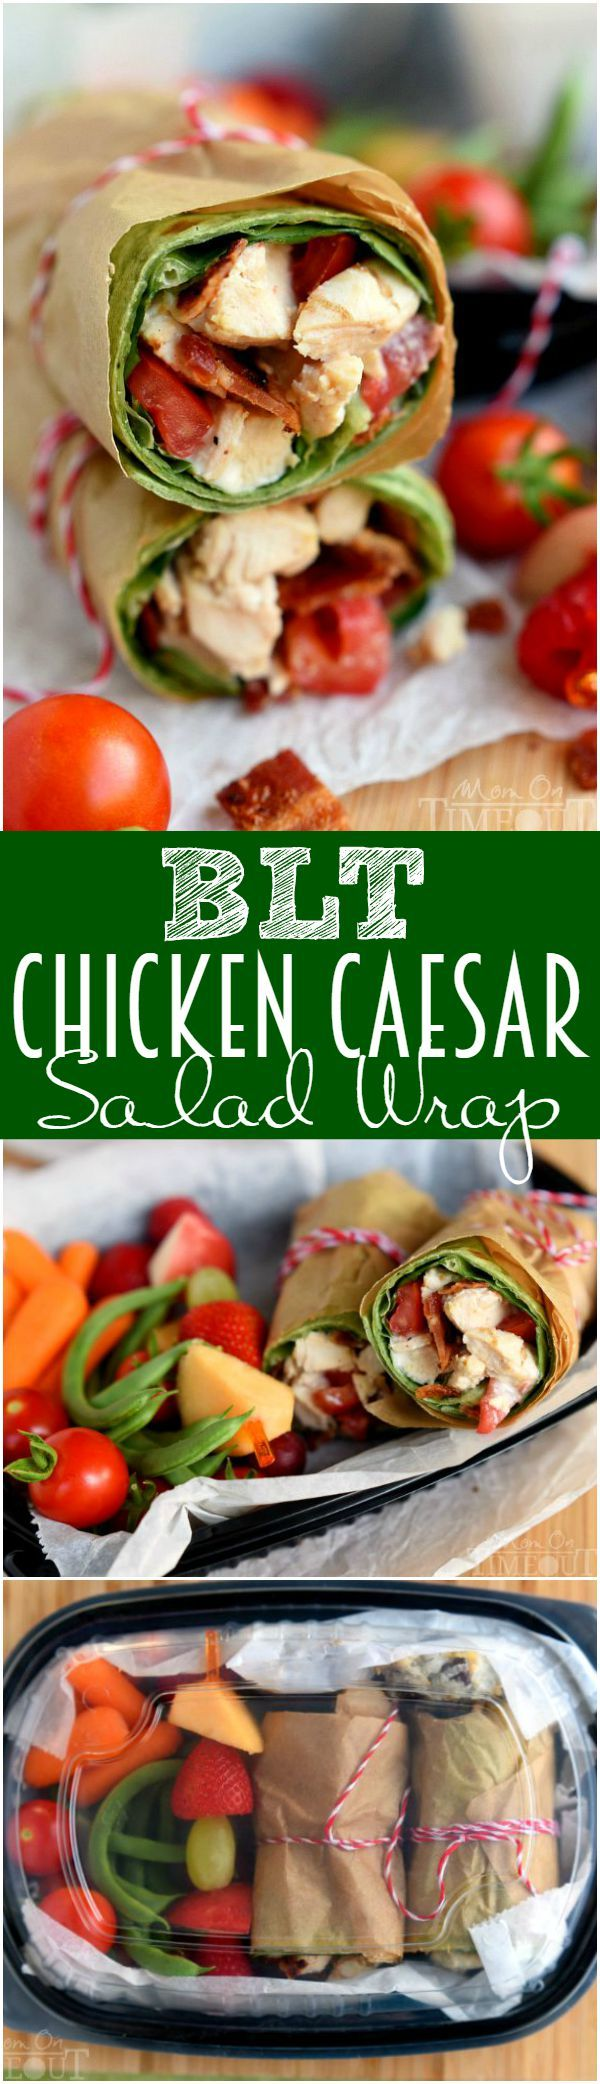 This BLT Chicken Caesar Salad Wrap has all the makings to become your new go-to recipe! Chicken, bacon, Caesar dressing, and tomato are wrapped up in an easy-to-make meal that is perfect for a light dinner or lunch.  | Mom On Timeout